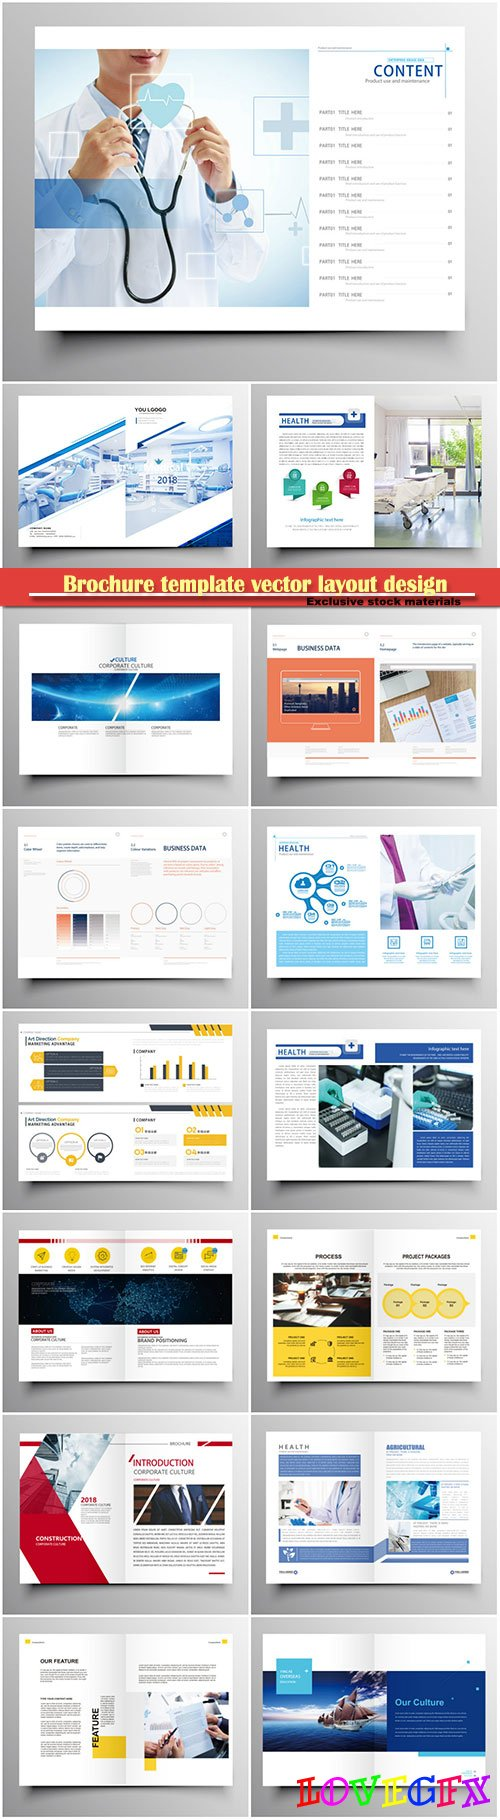 Brochure template vector layout design, corporate business annual report, magazine, flyer mockup # 126